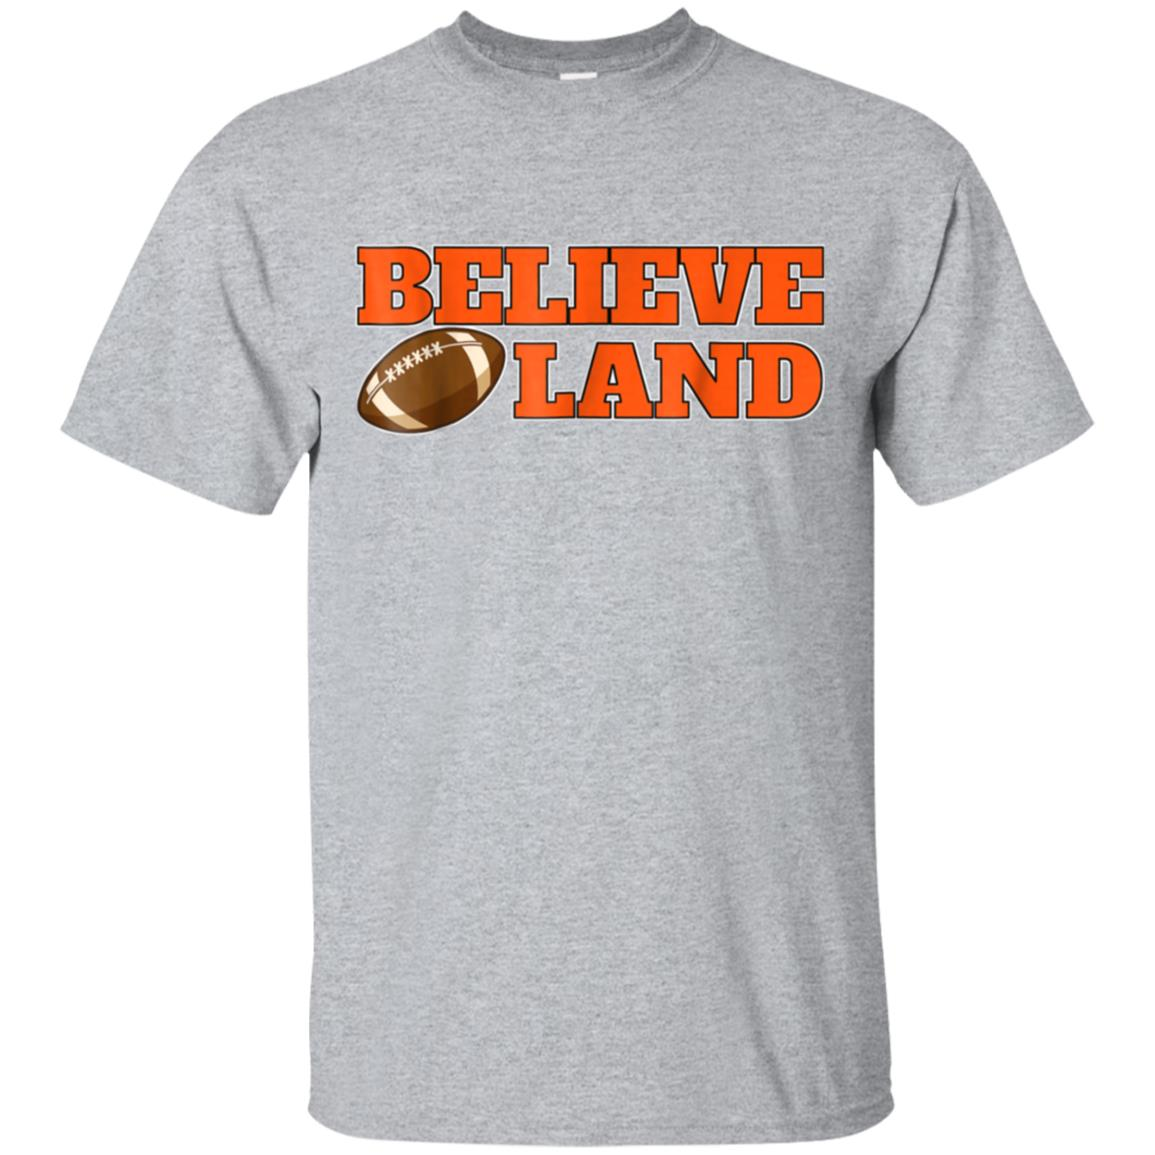 Believe in Cleveland T-shirt Funny Football shirt 99promocode